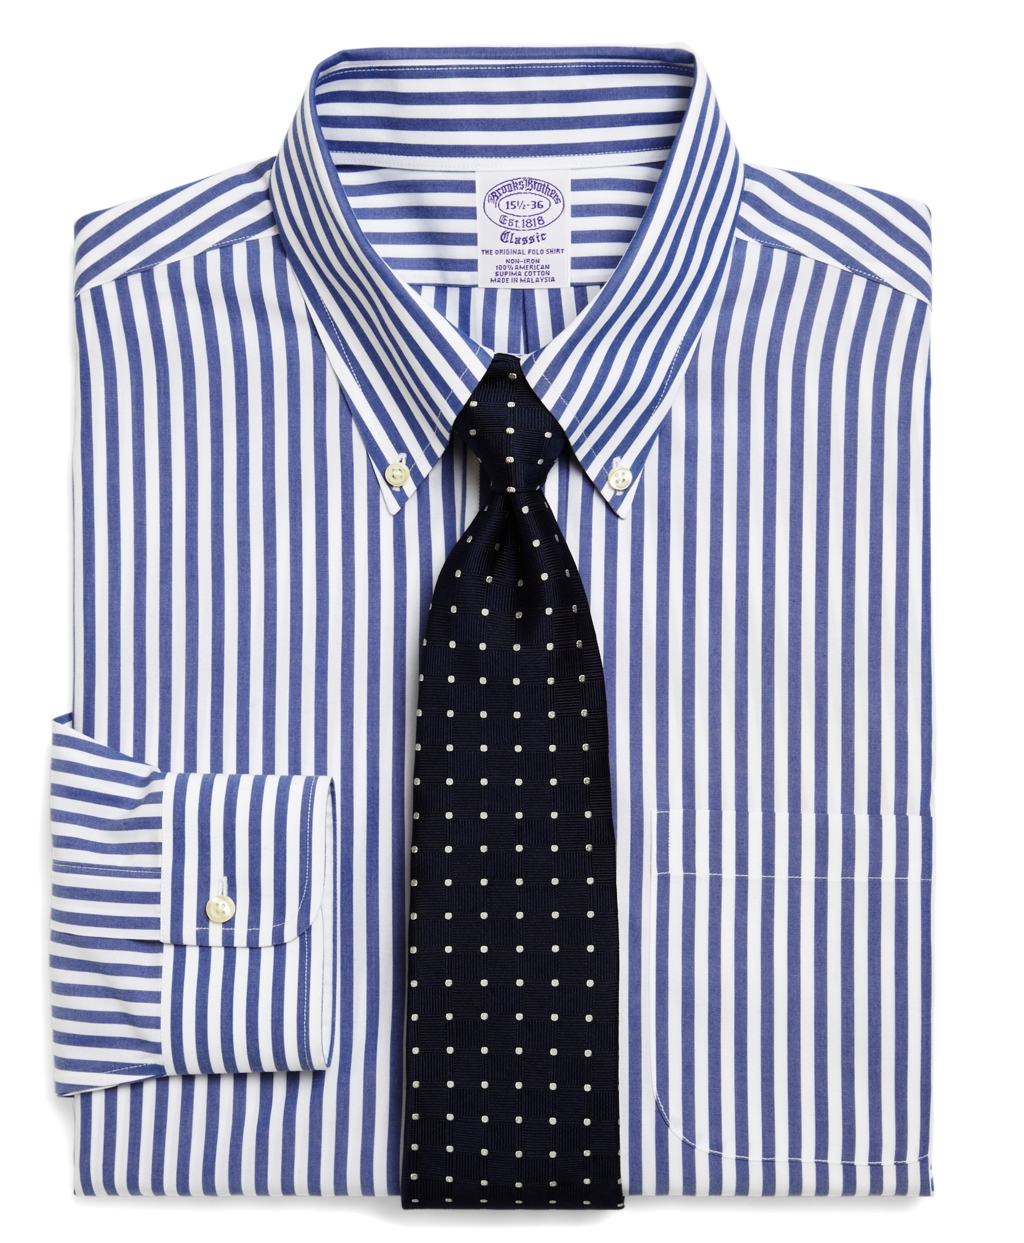 Brooks brothers supima cotton non iron extra slim fit wide for Supima cotton dress shirts